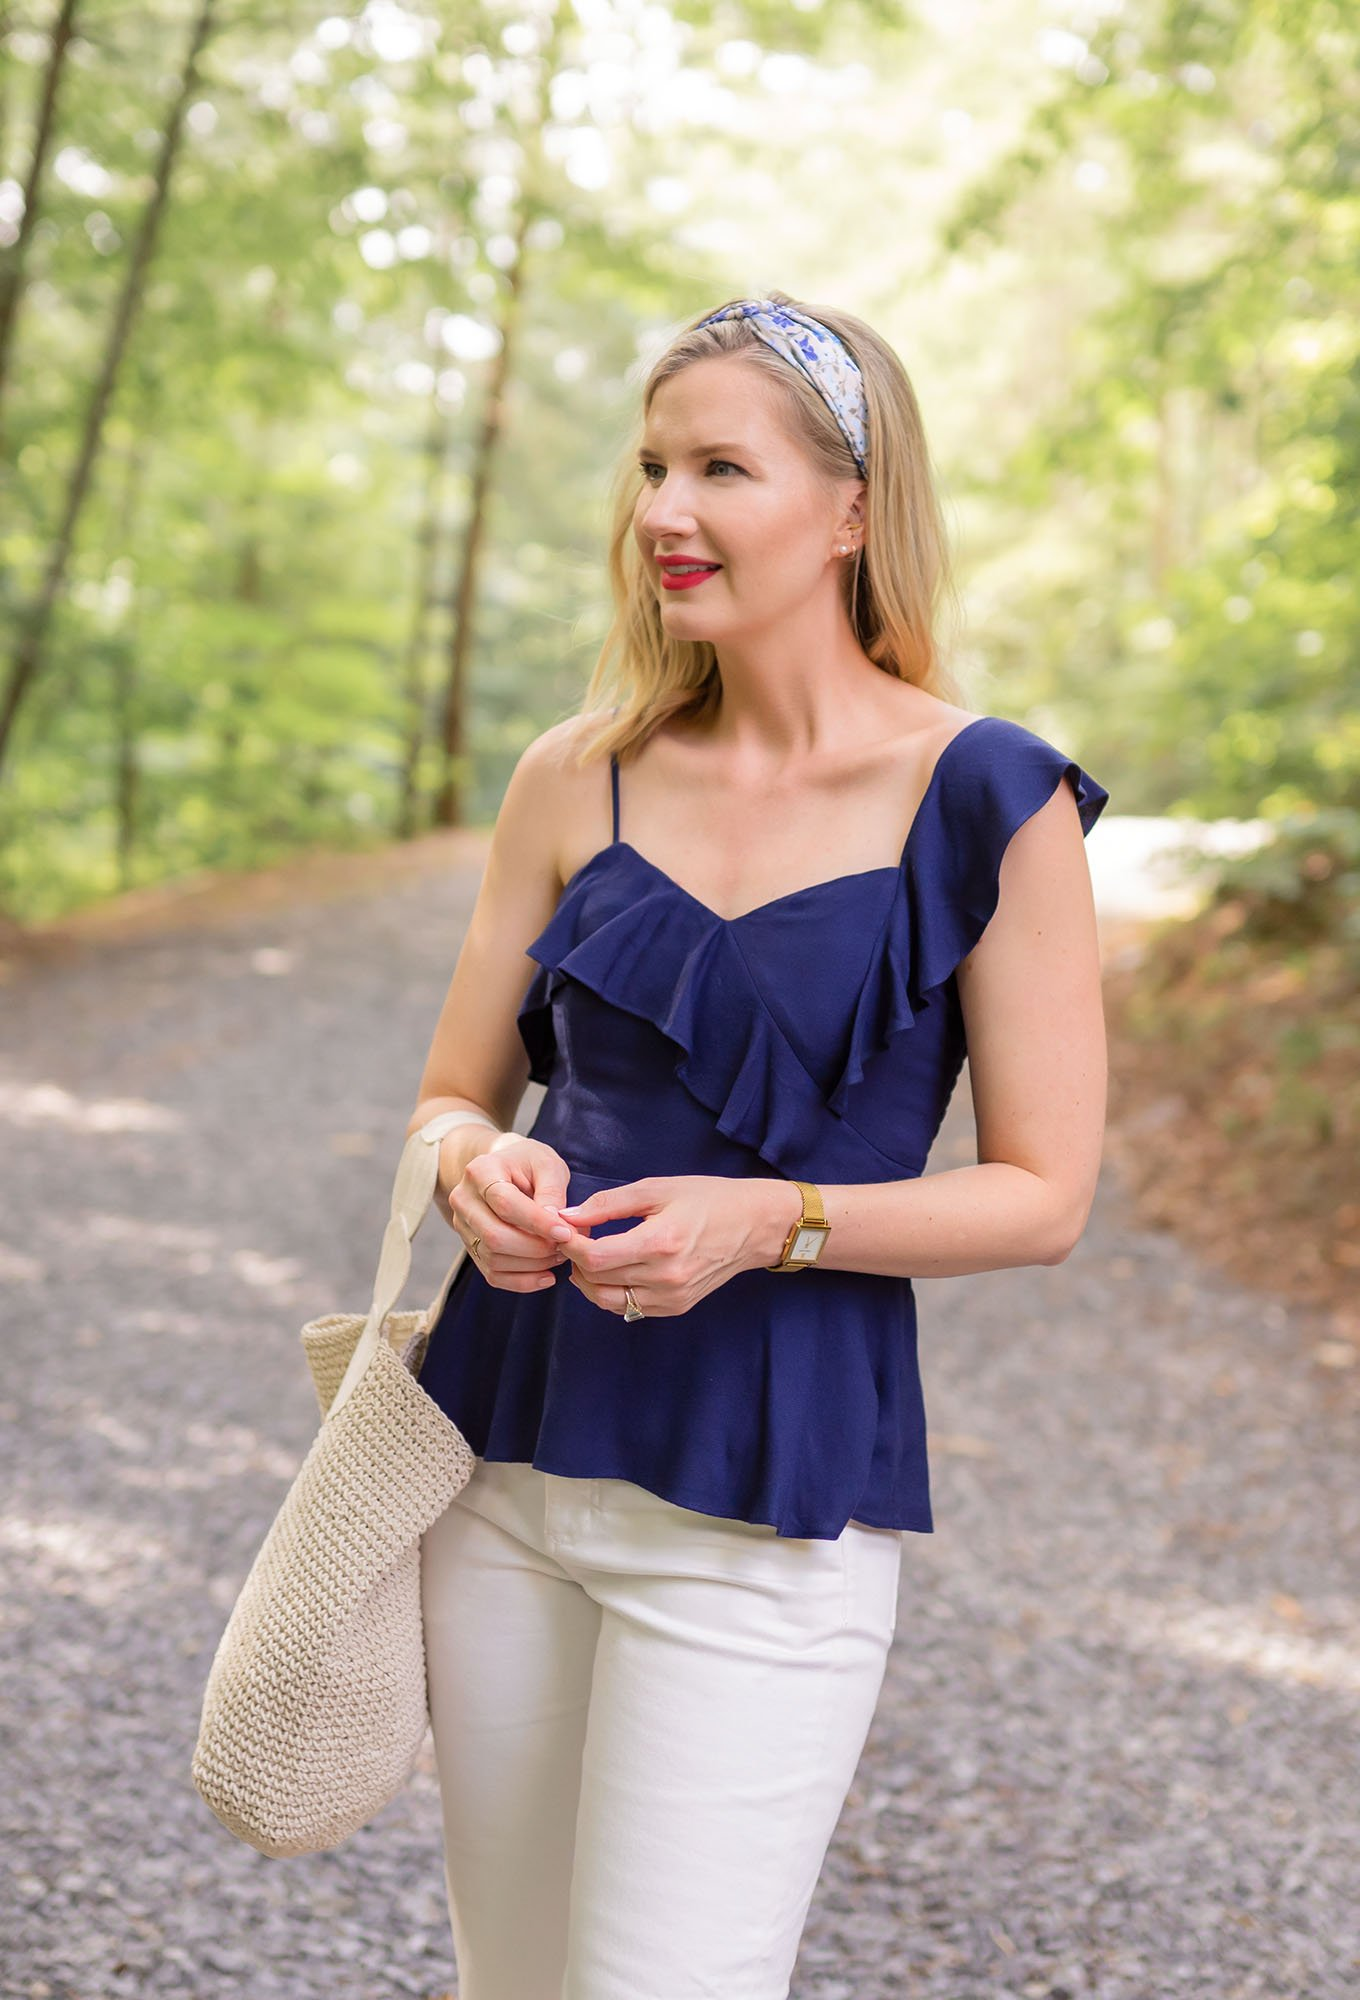 Ashley Brooke outfit in white cropped pants and navy peplum top on www.ashleybrookedesigns.com